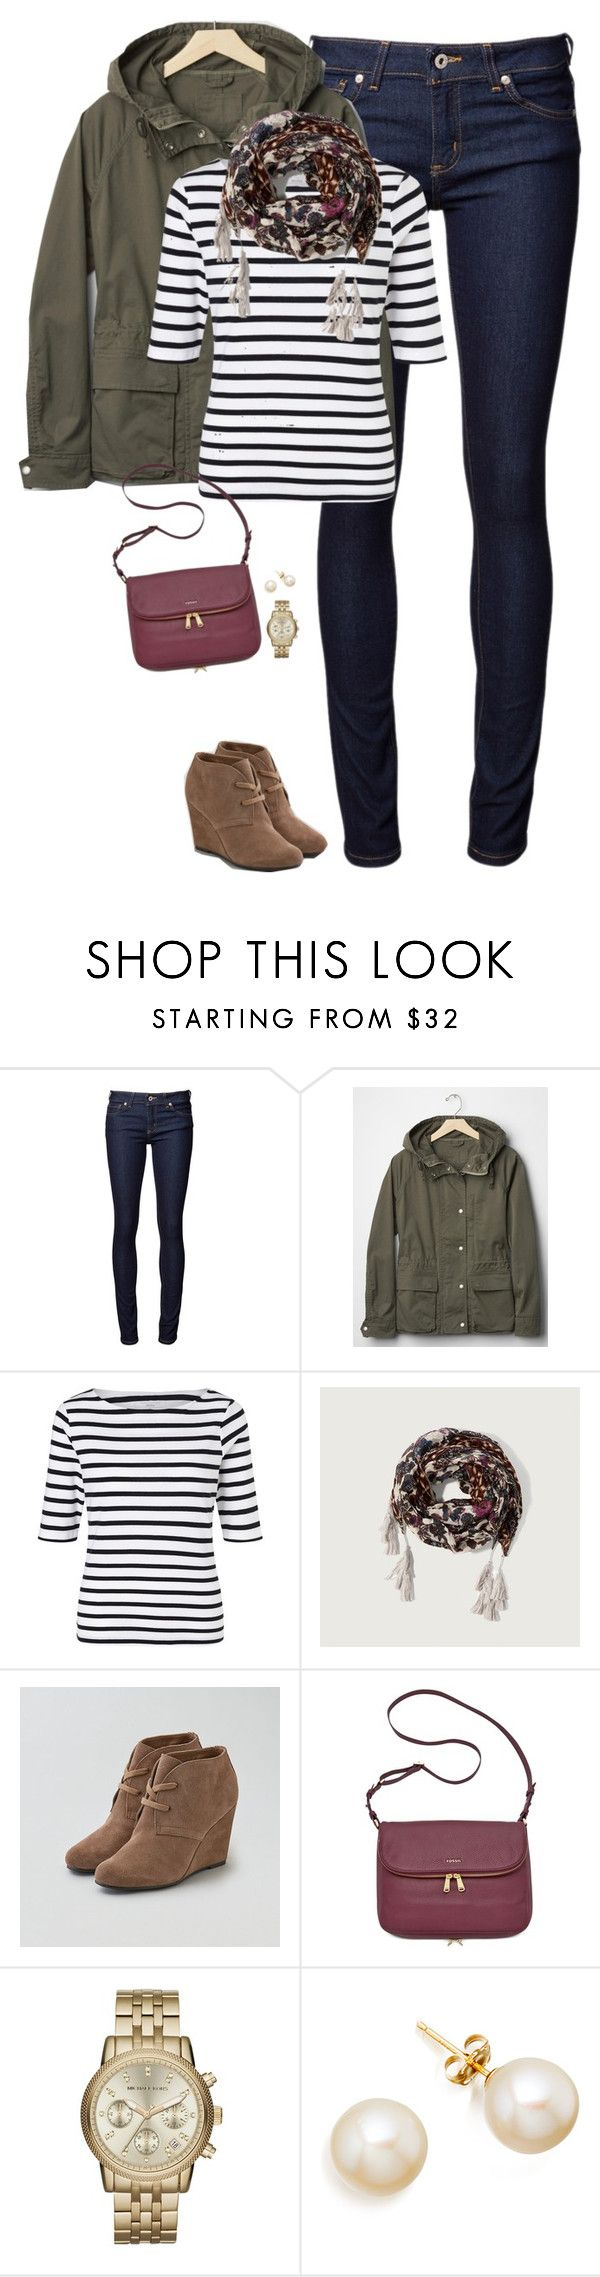 """Gap hooded jacket, striped top & tassel scarf"" by steffiestaffie ❤ liked on Polyvore featuring Naked & Famous, Gap, John Lewis, Abercrombie & Fitch, American Eagle Outfitters, FOSSIL, Michael Kors, women's clothing, women and female"